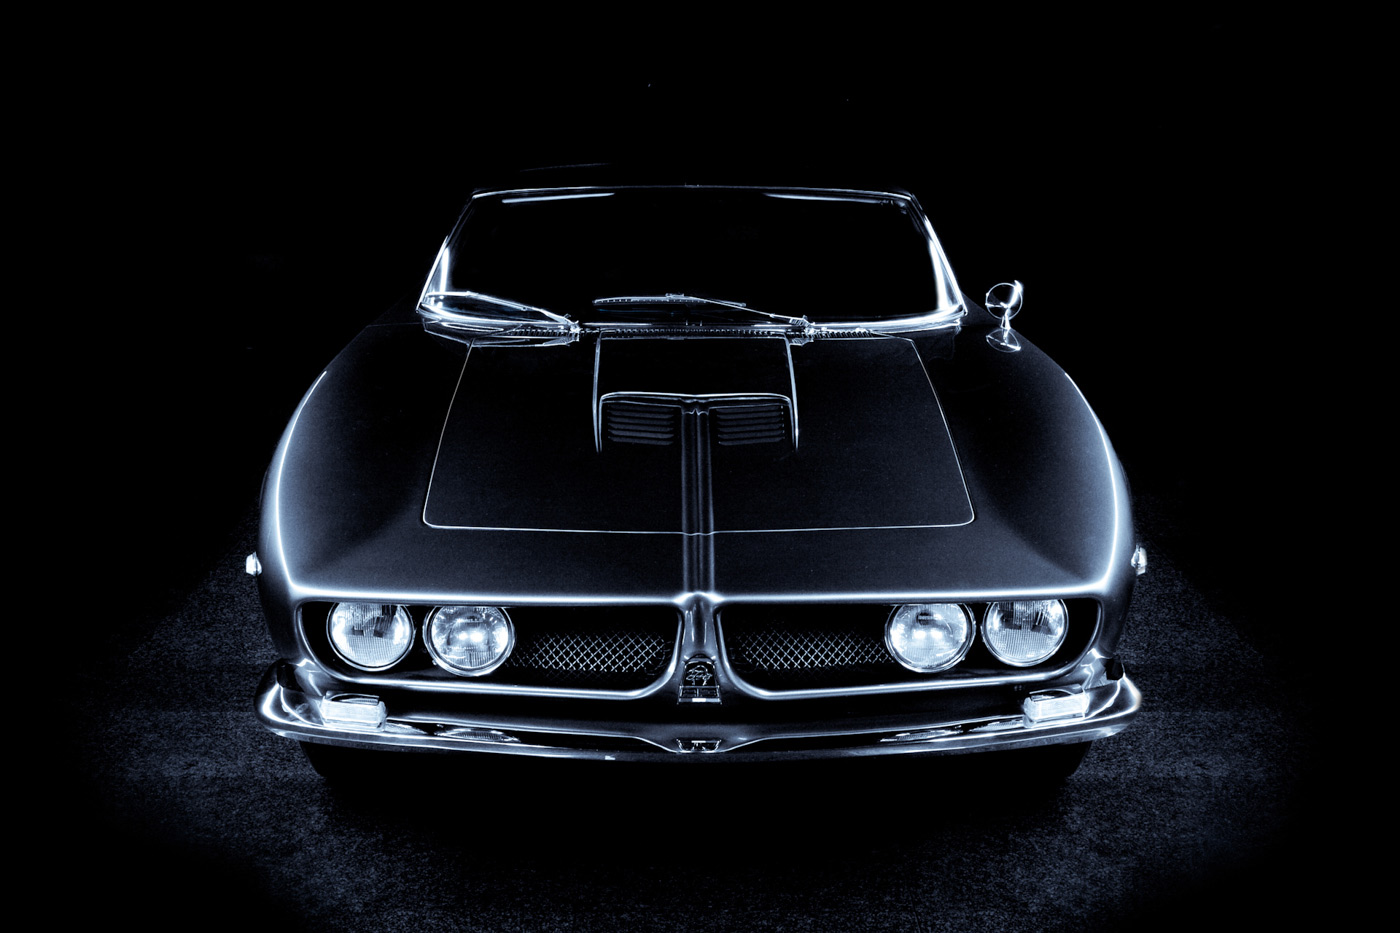 The Iso Grifo A3L